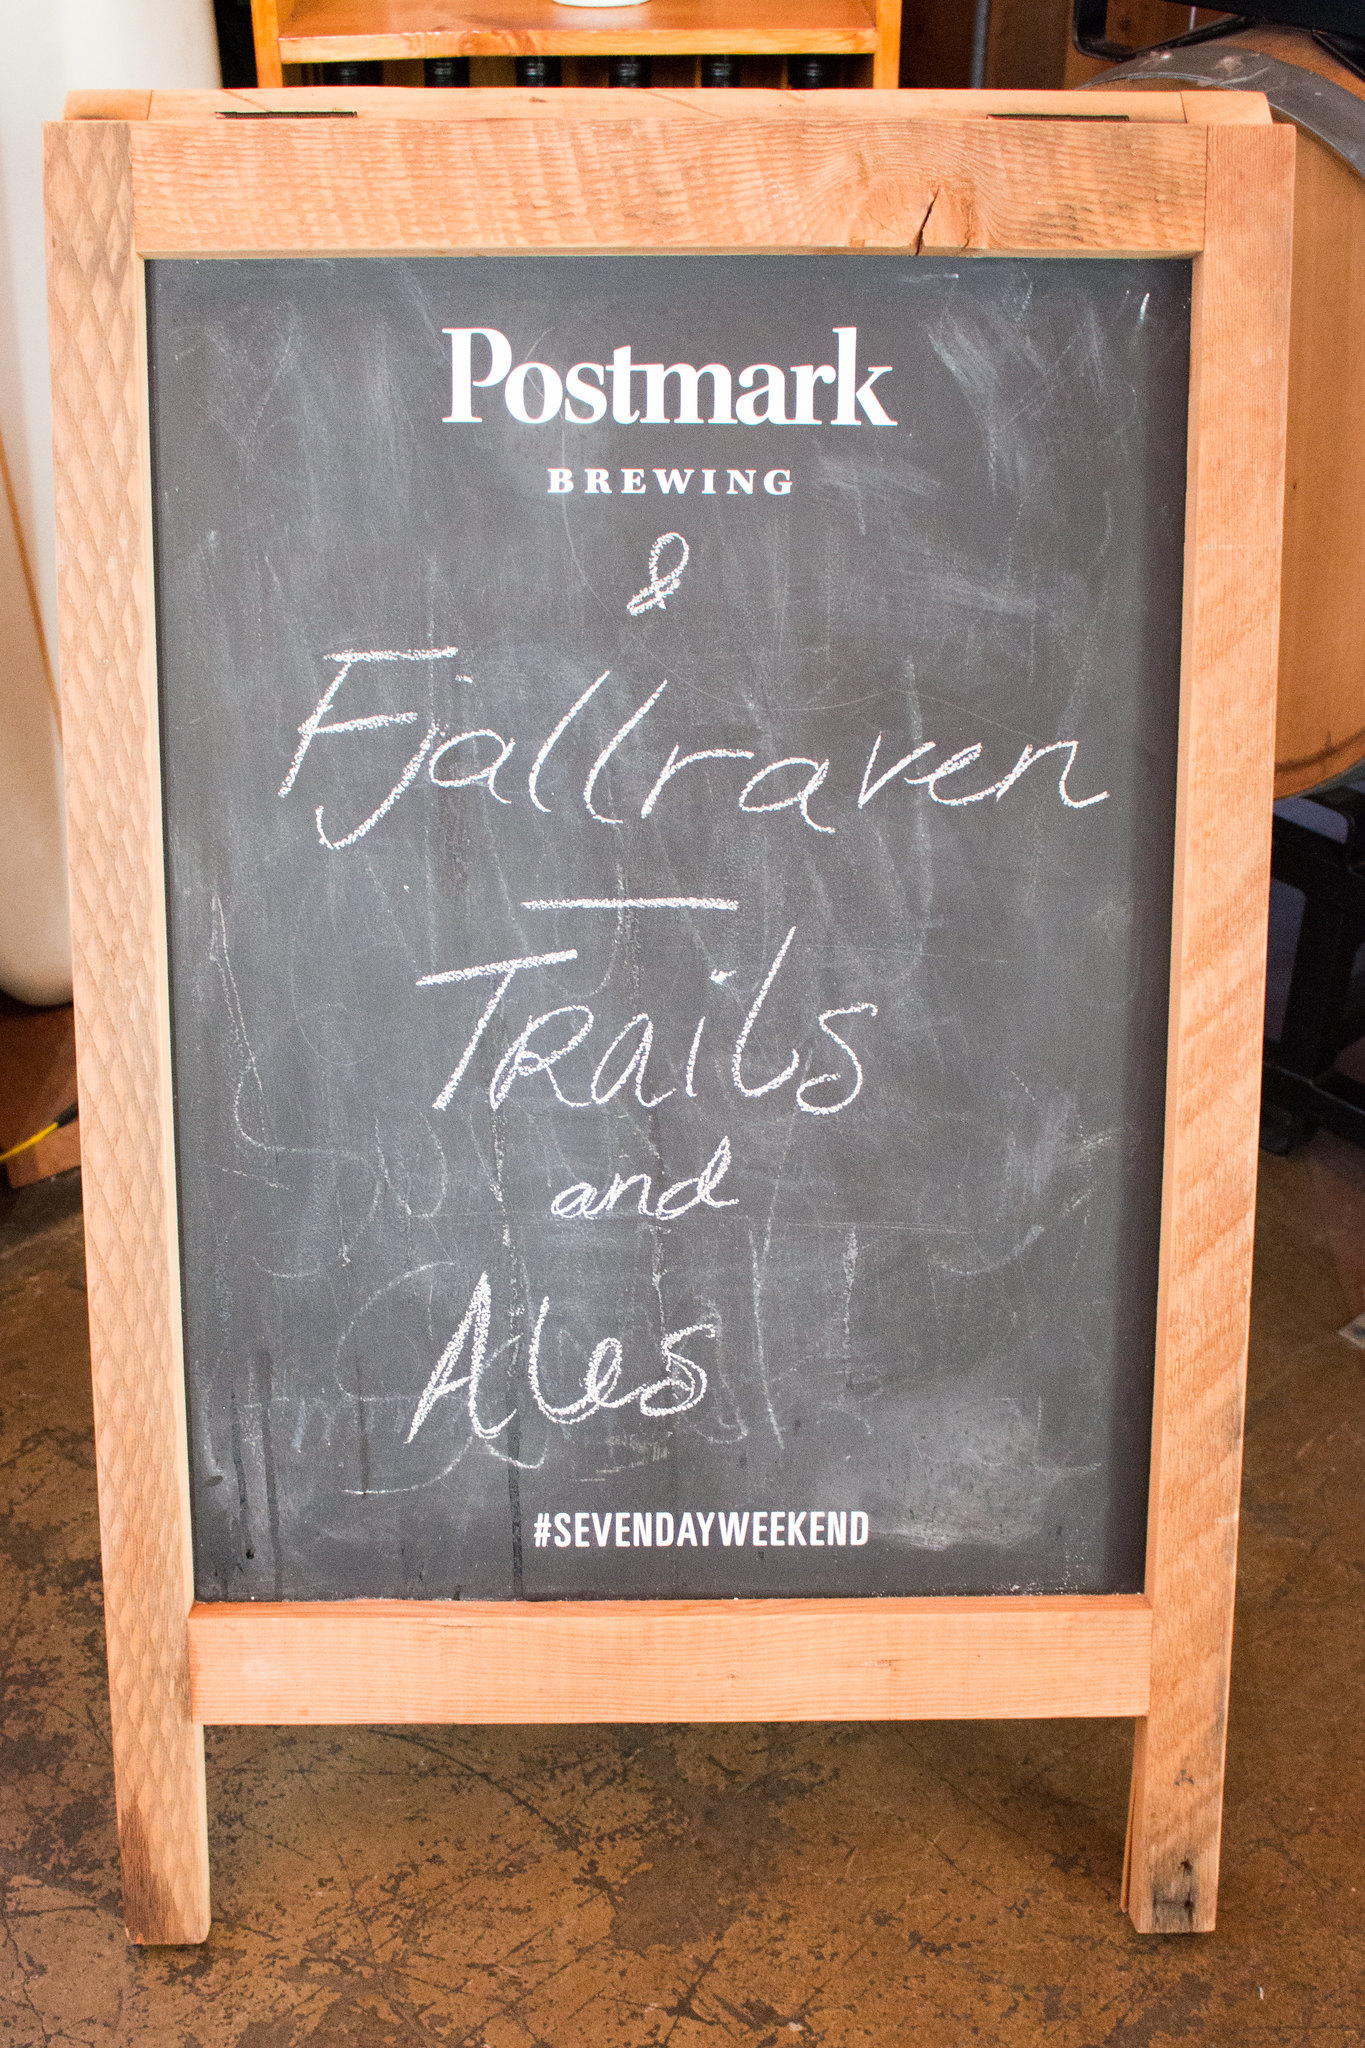 Trails & Ales: Postmark Brewing